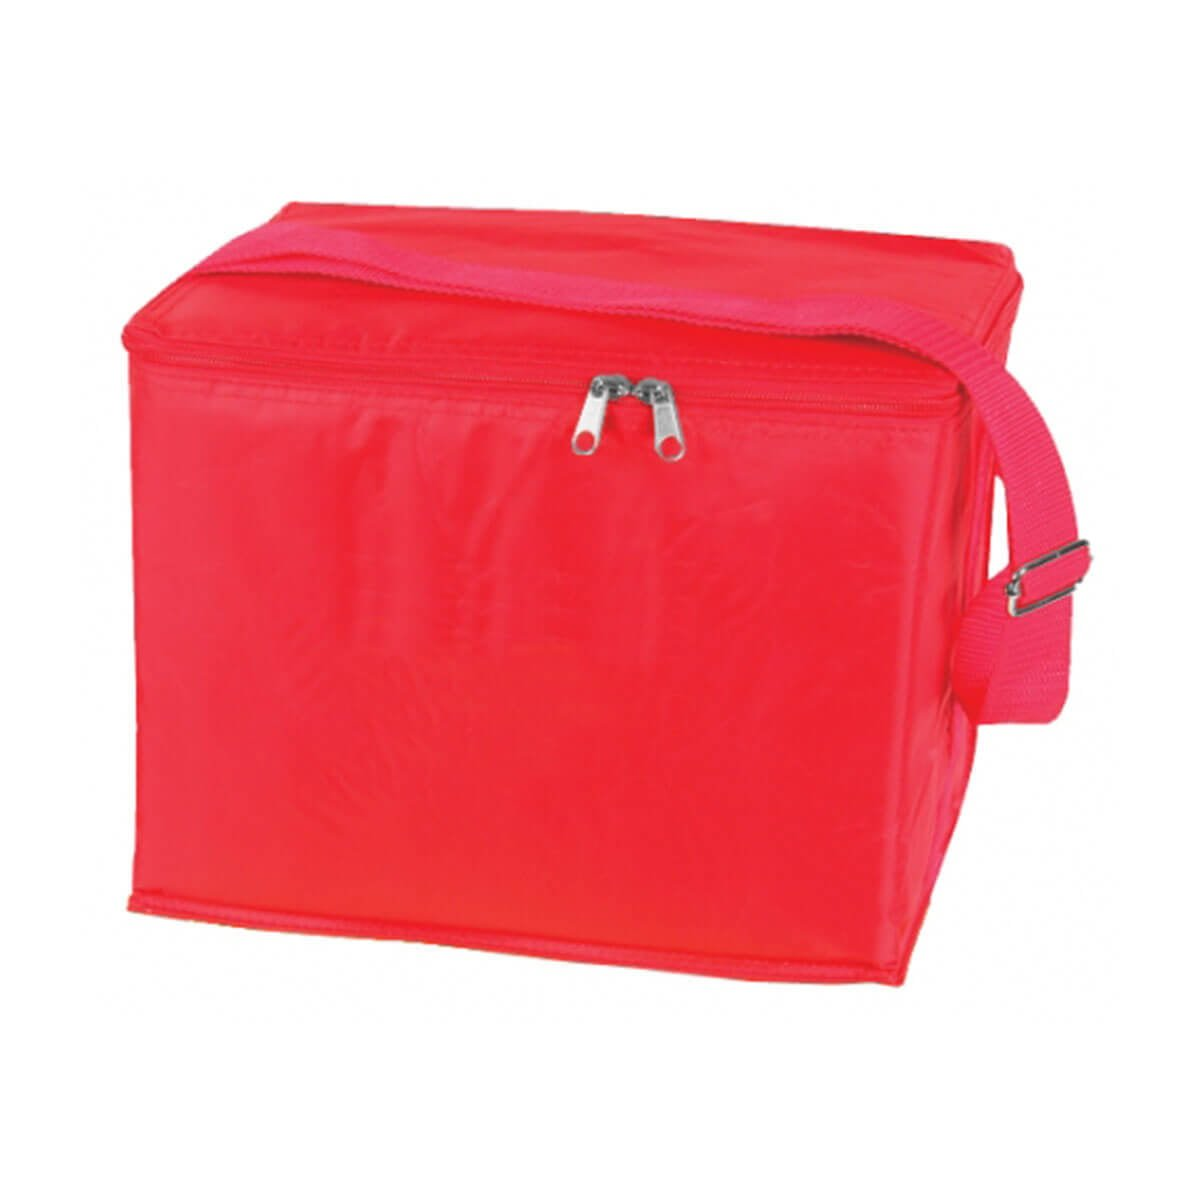 6 Can Cooler Bag-Red